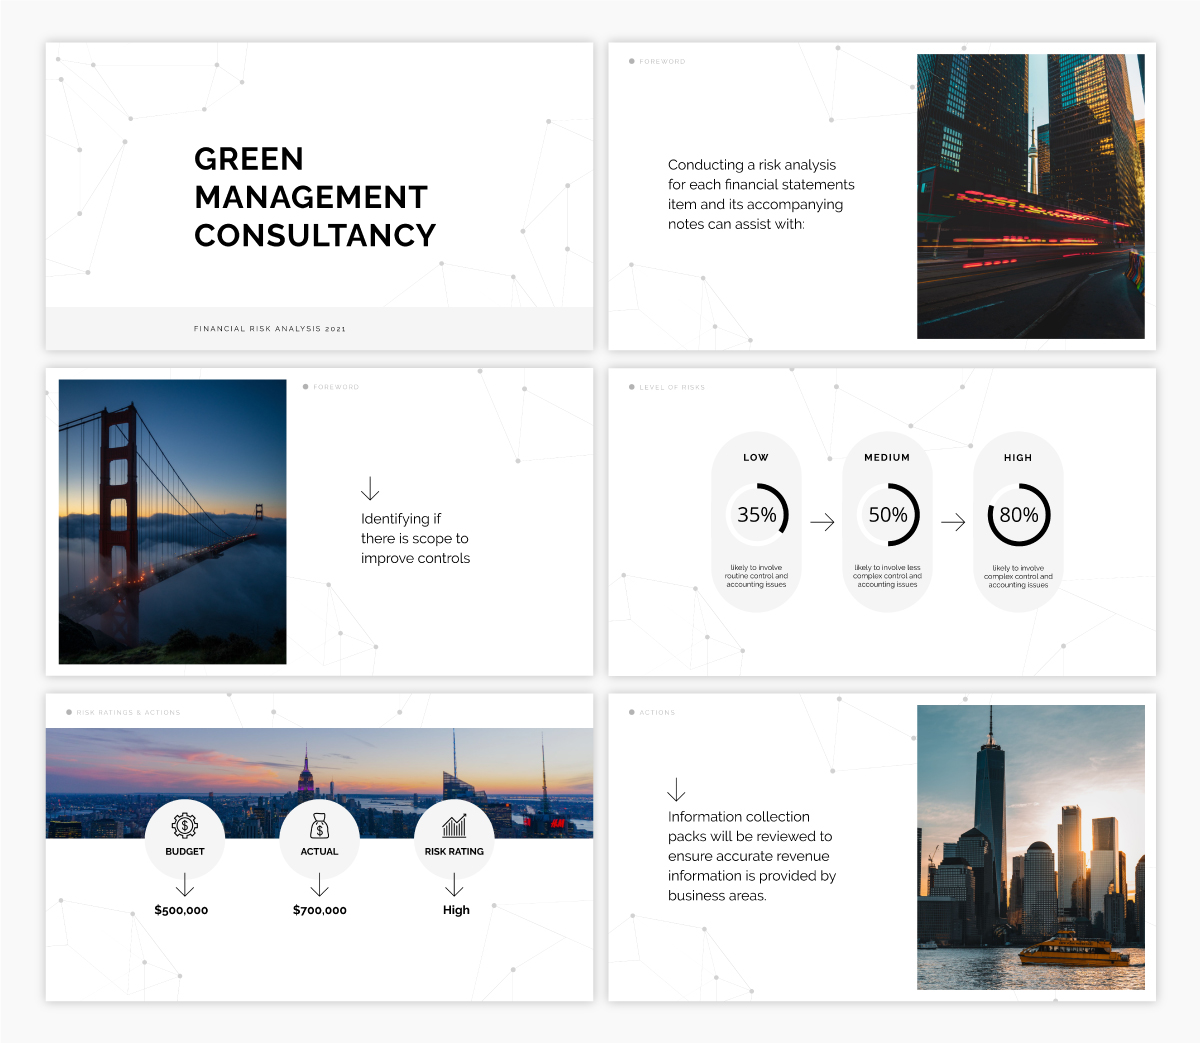 A consultancy presentation template using the font Raleway.